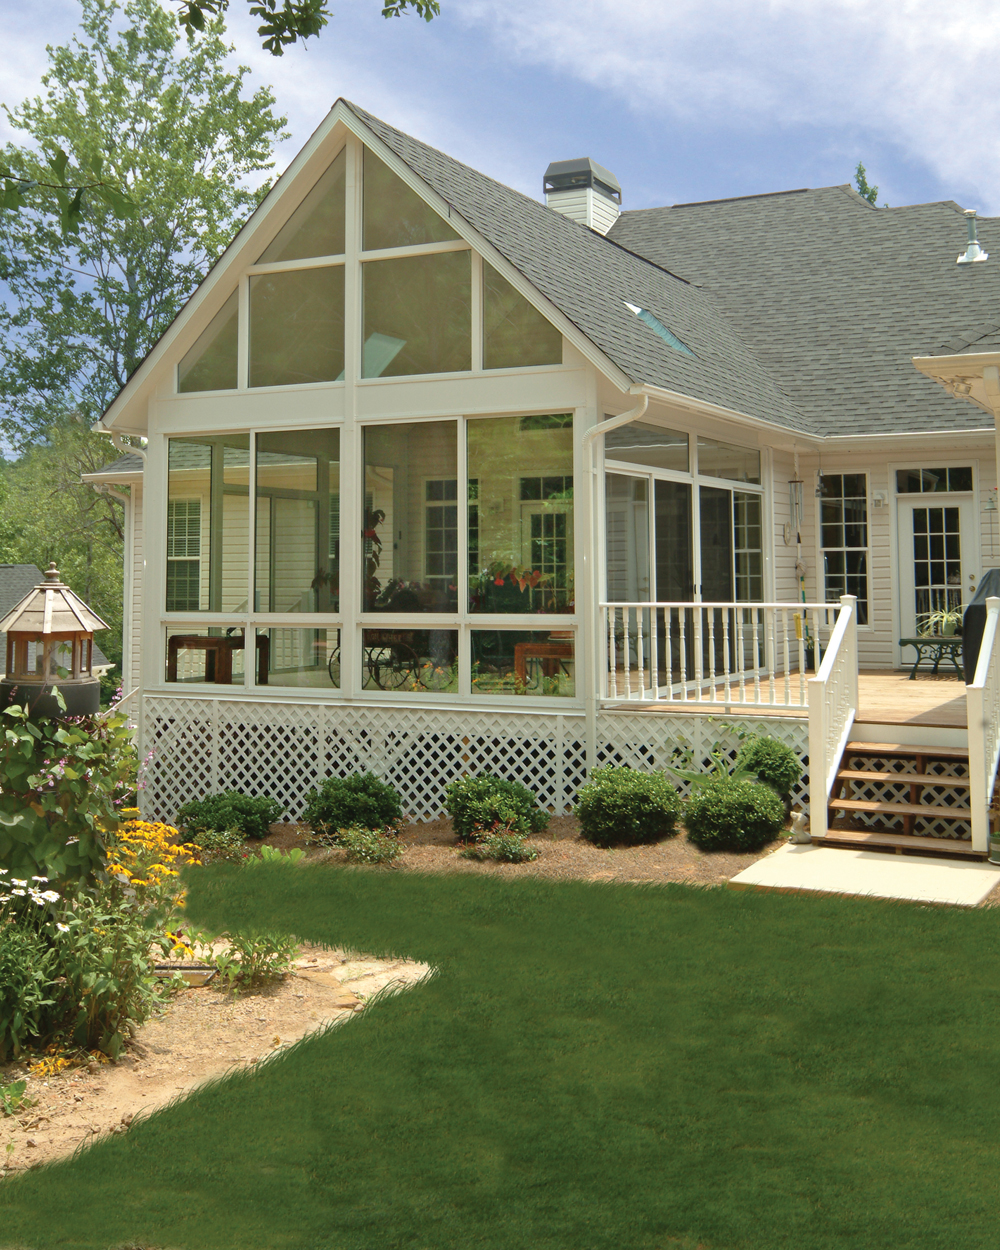 Patio enclosures inc provides five lessons for building for House plans with sunroom